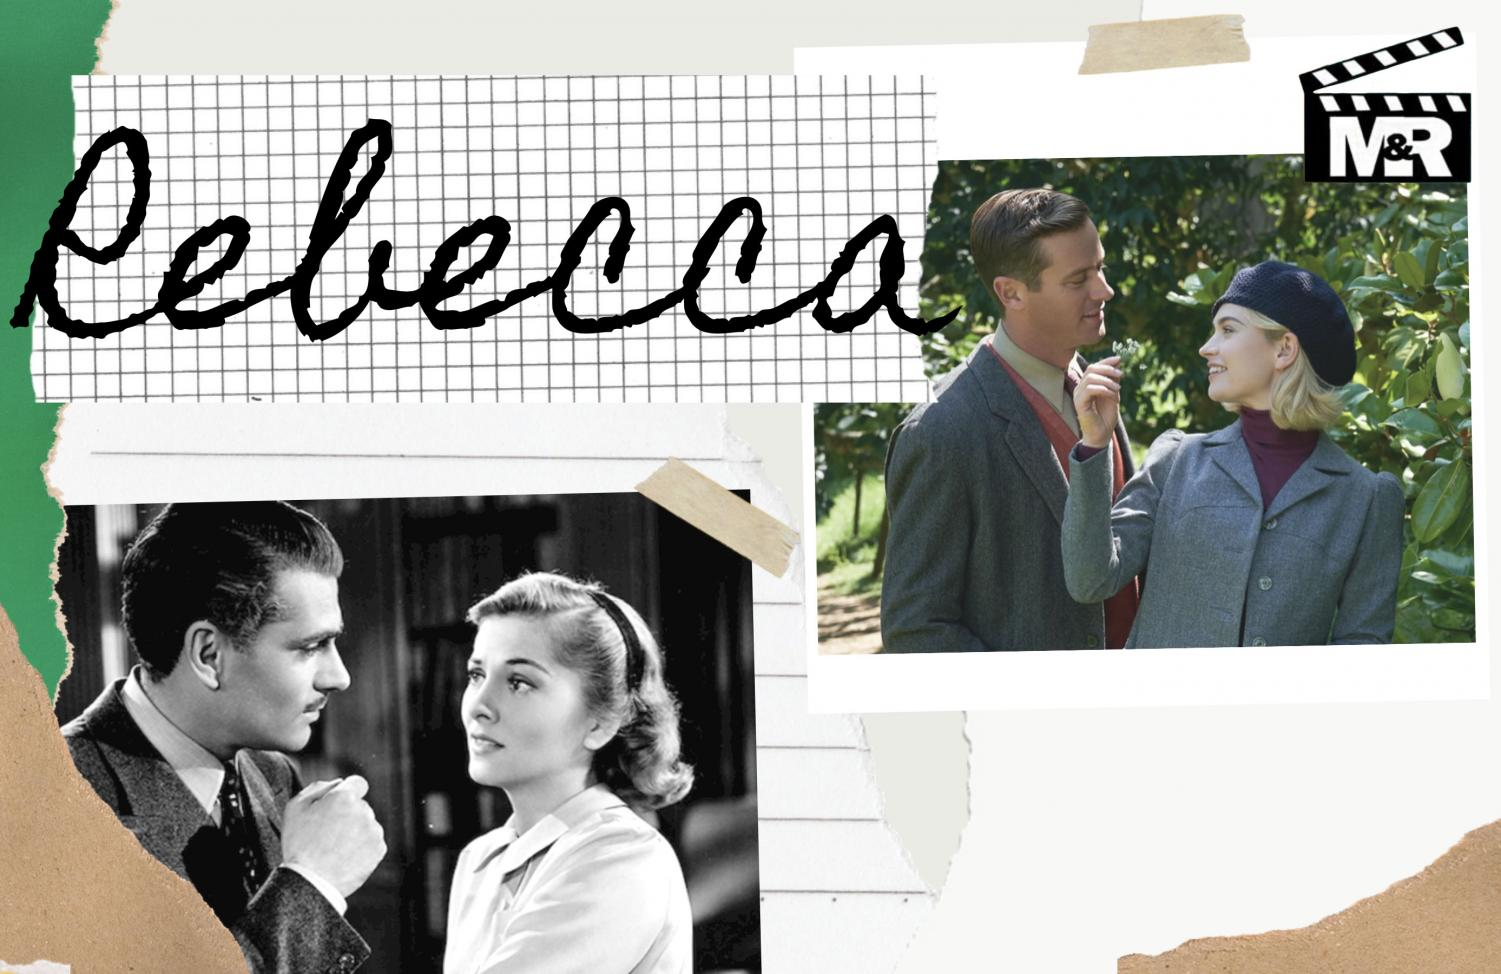 Side by side comparison of shots from Rebecca (1940) and Rebecca (2020)